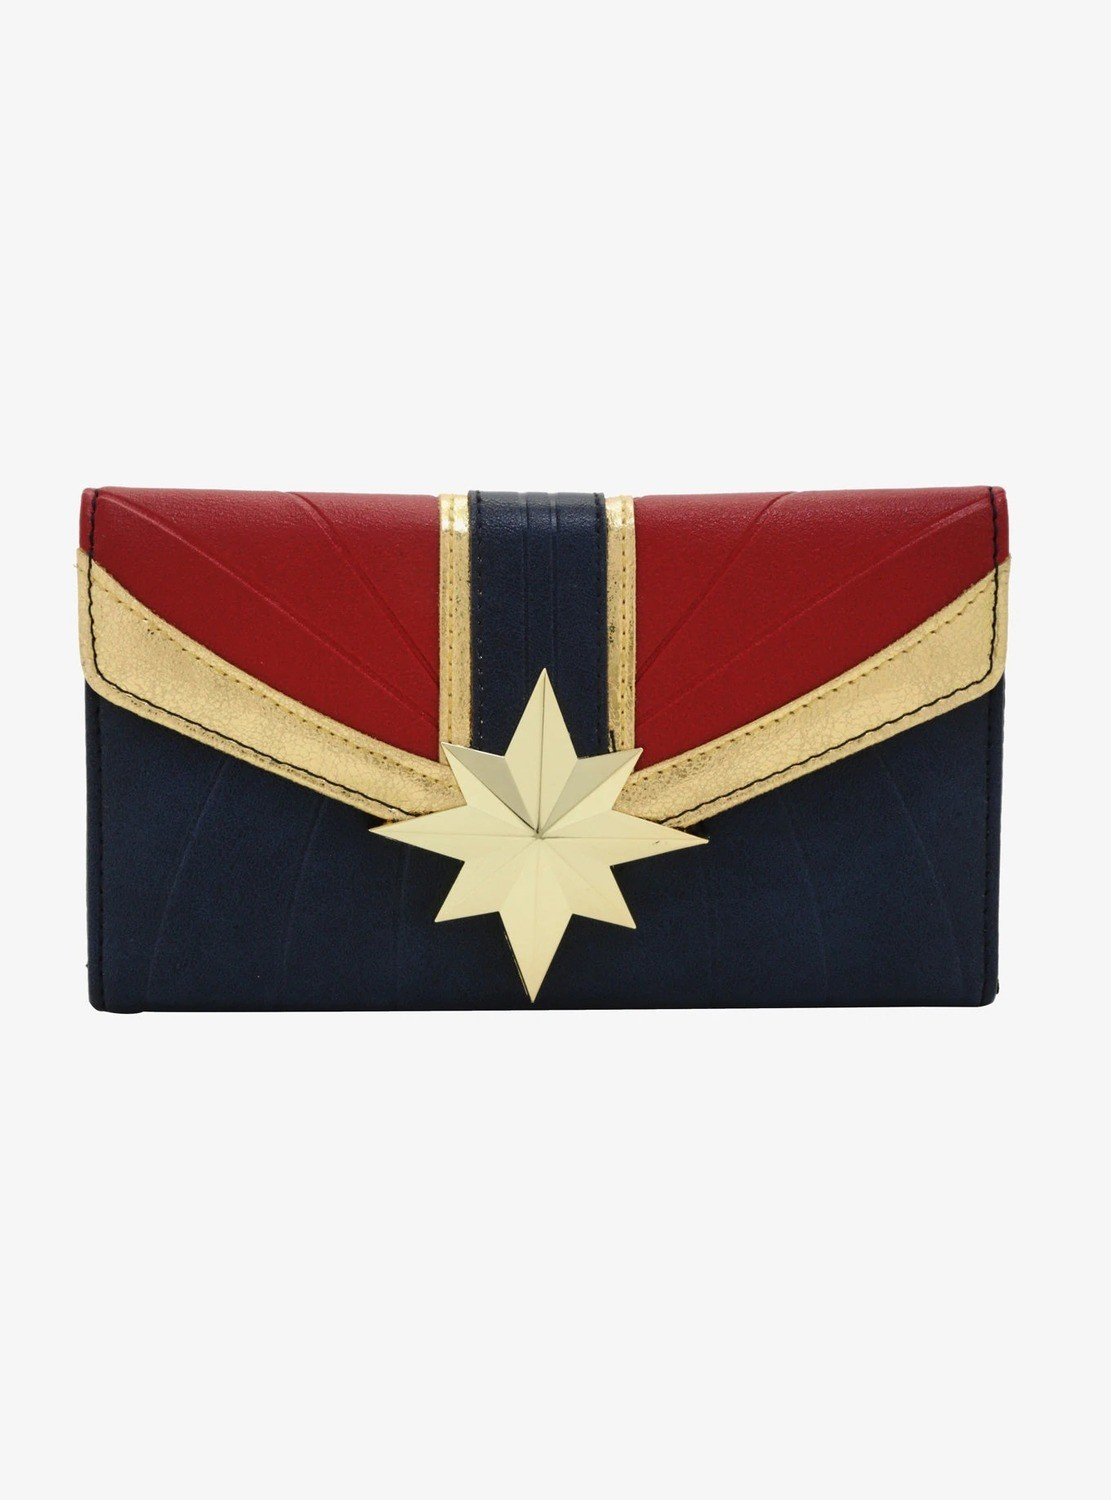 Cartera Capitan Marvel Exclusiva